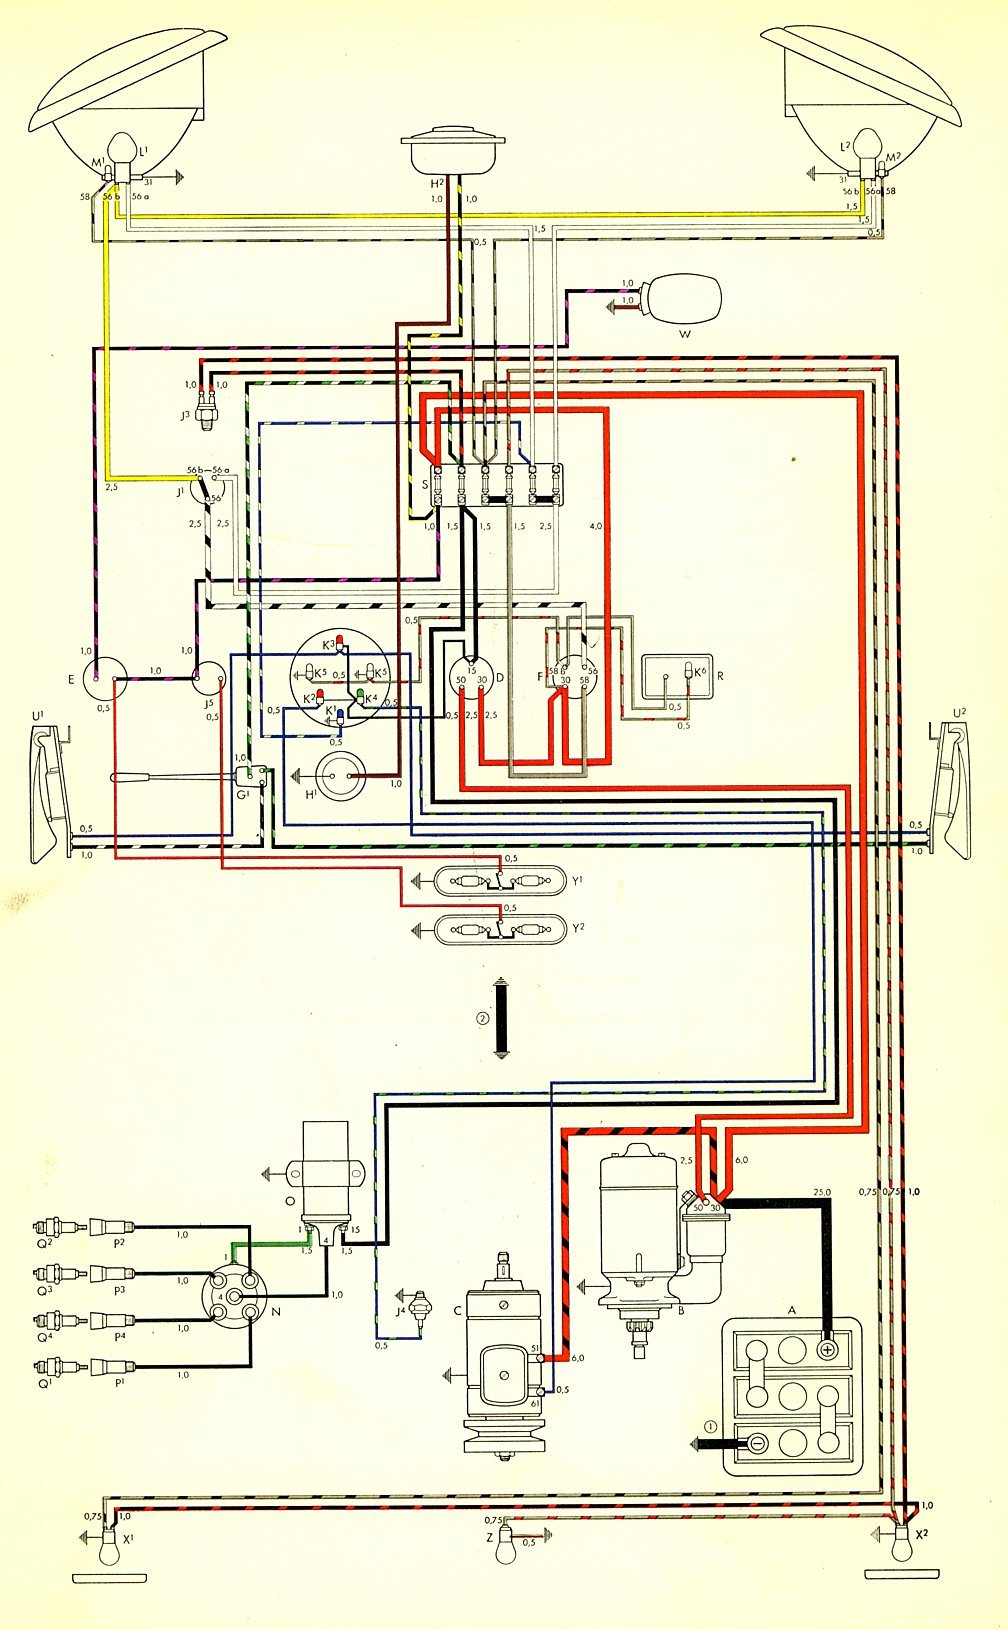 bus_59 bus wiring diagram vw wiring harness diagram \u2022 wiring diagrams j 1971 vw bus wiring diagram at nearapp.co